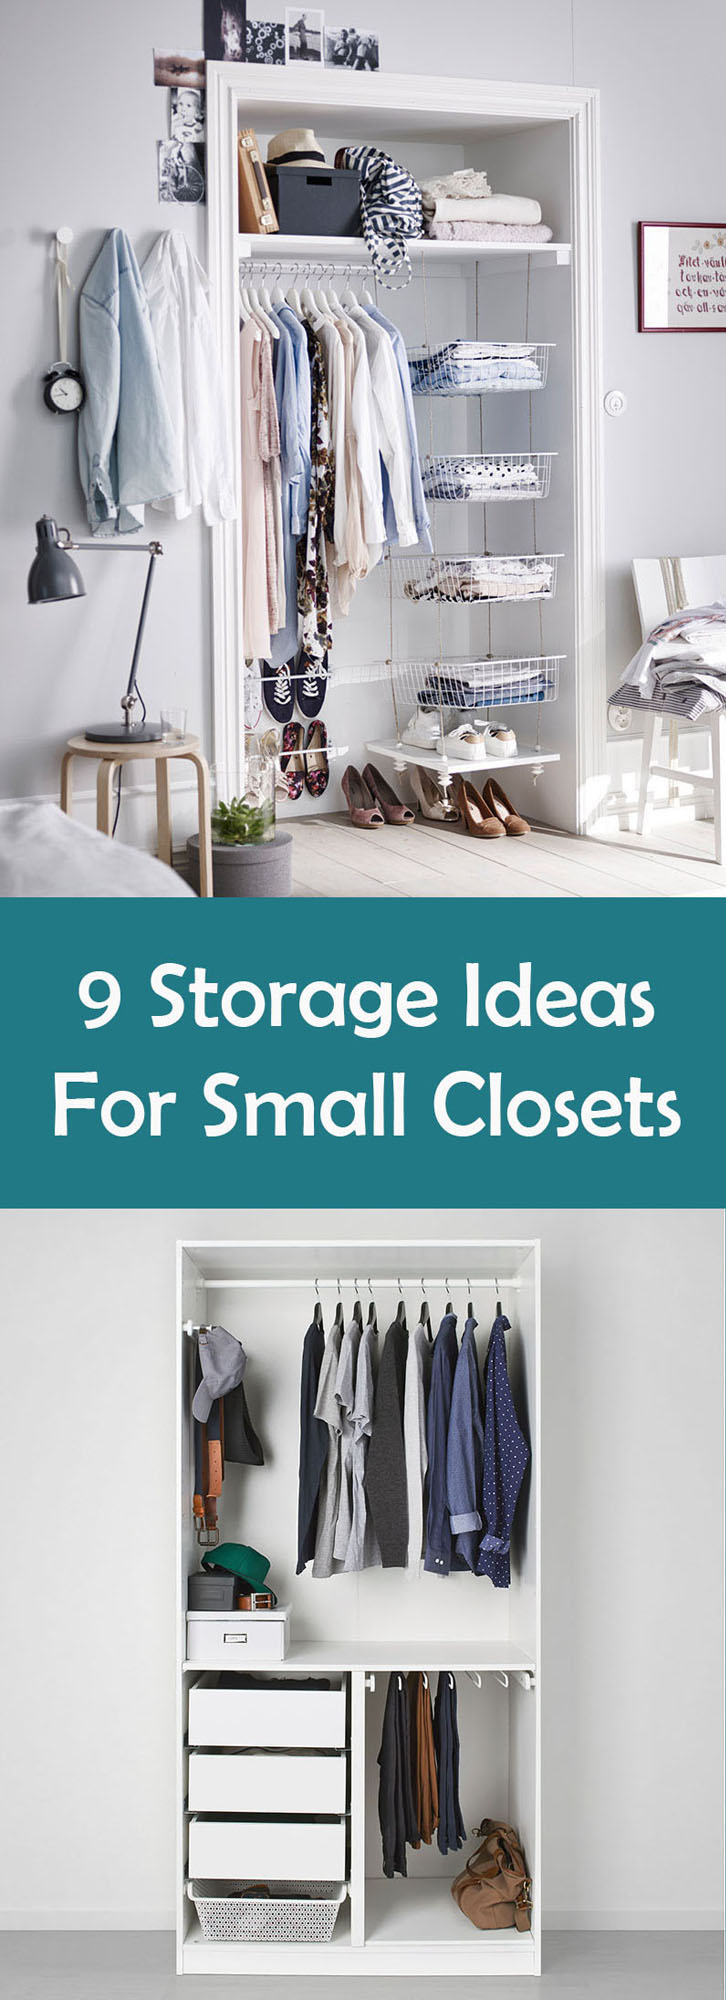 9 Storage Solutions For Small Closets